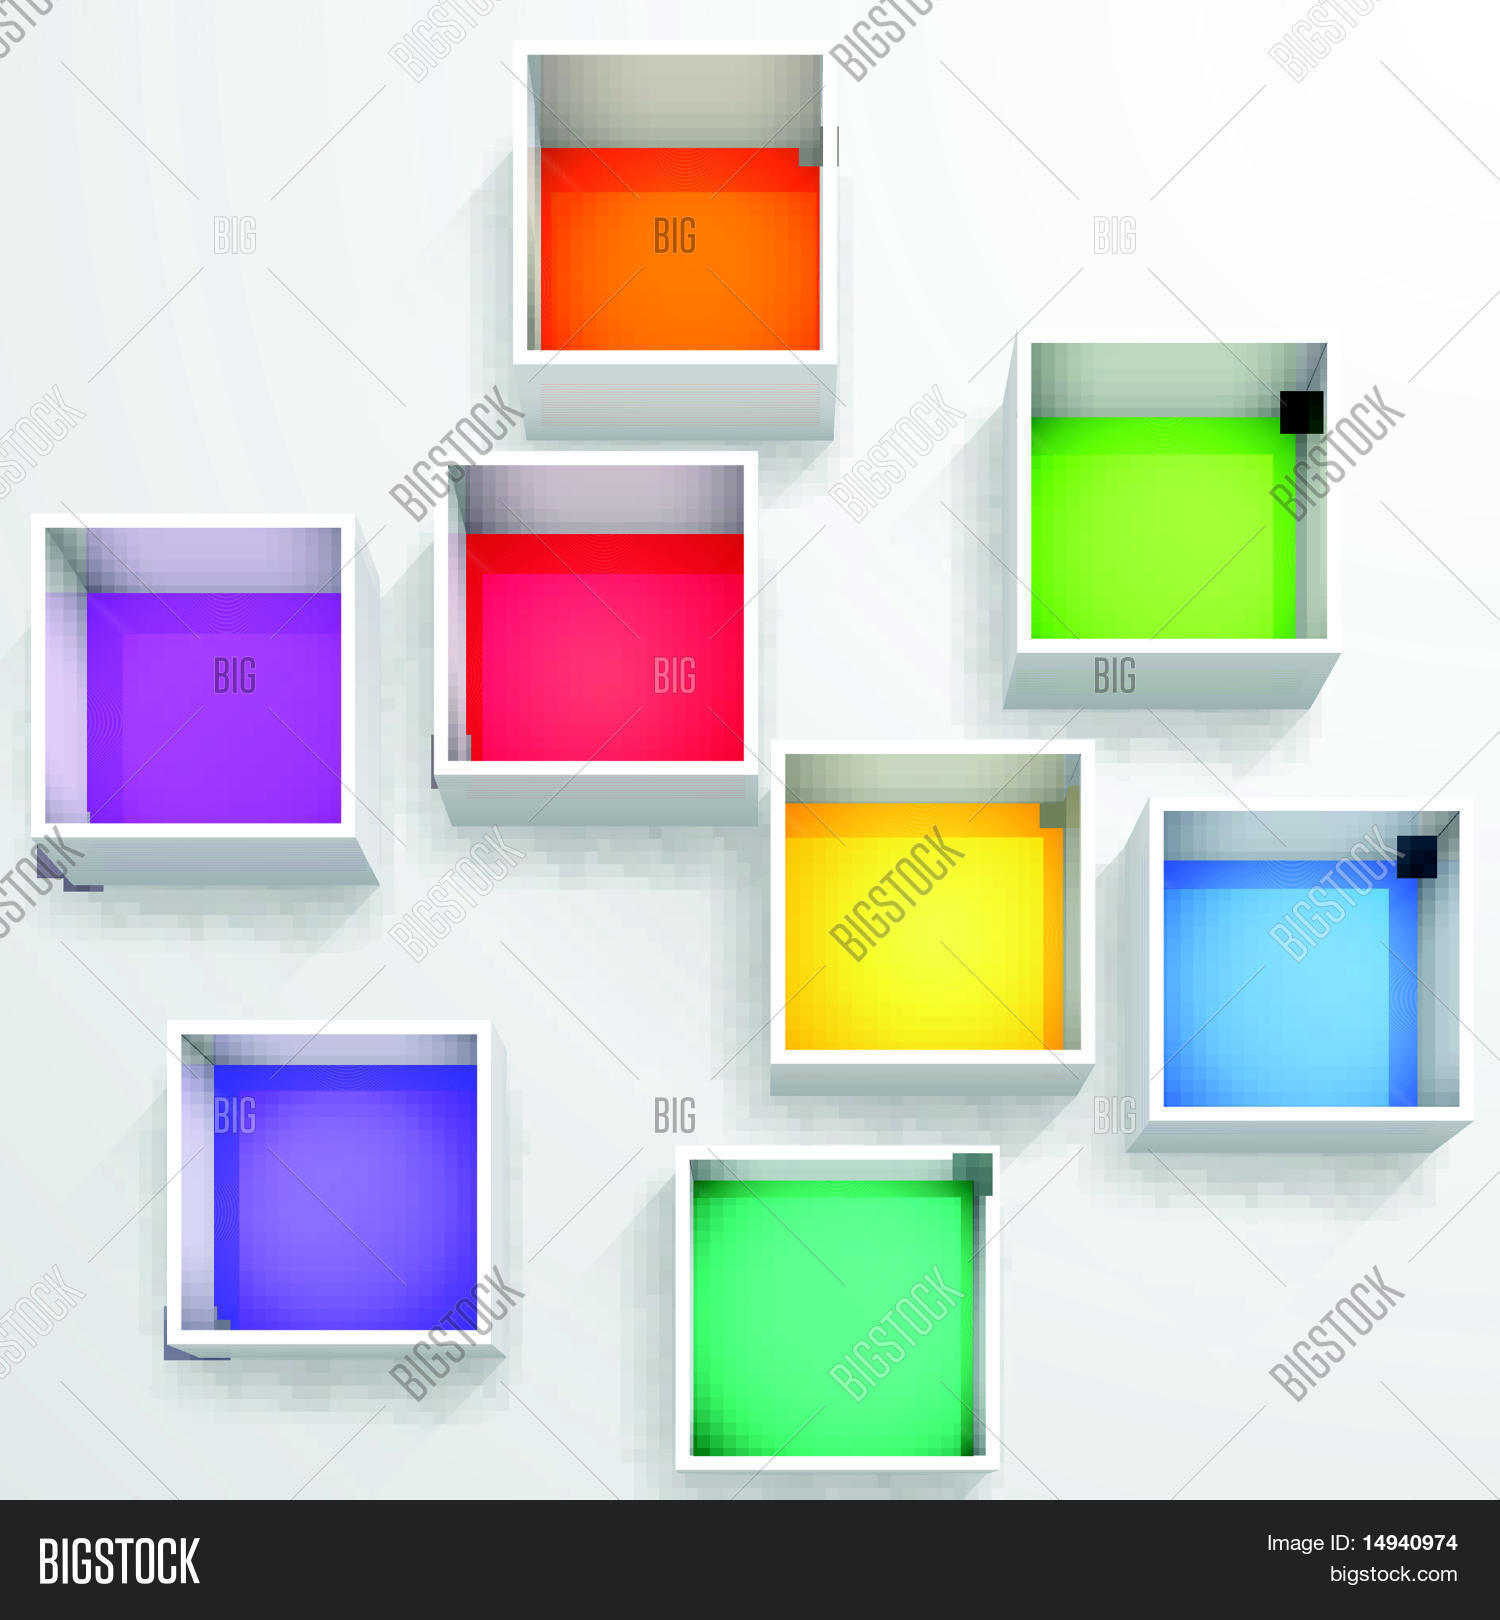 3d,abstract,advertising,background,blank,blue,bookshelf,box,business,clean,composition,cube,design,empty,equipment,frame,furniture,gallery,green,grey,home,house,illustration,indoor,installation,interior,isolated,light,lilac,market,museum,office,open,place,plastic,realistic,red,shelf,shop,simplicity,space,square,standing,storage,store,trade,vector,wall,white,yellow